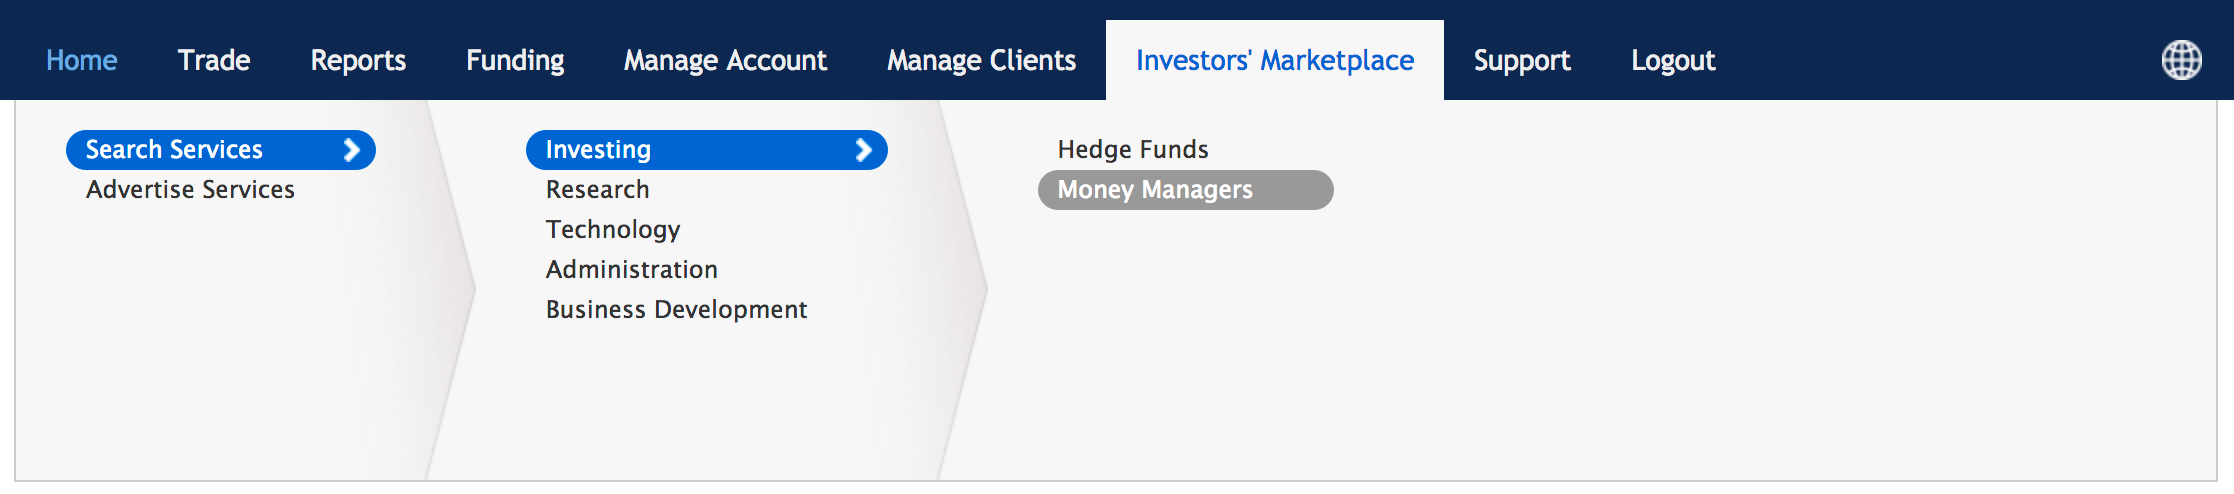 Ib asset management advisor instructions click the blue link button on the bottom of ib asset managements money manager listing and then electronically sign a sub advisory agreement with ib asset platinumwayz